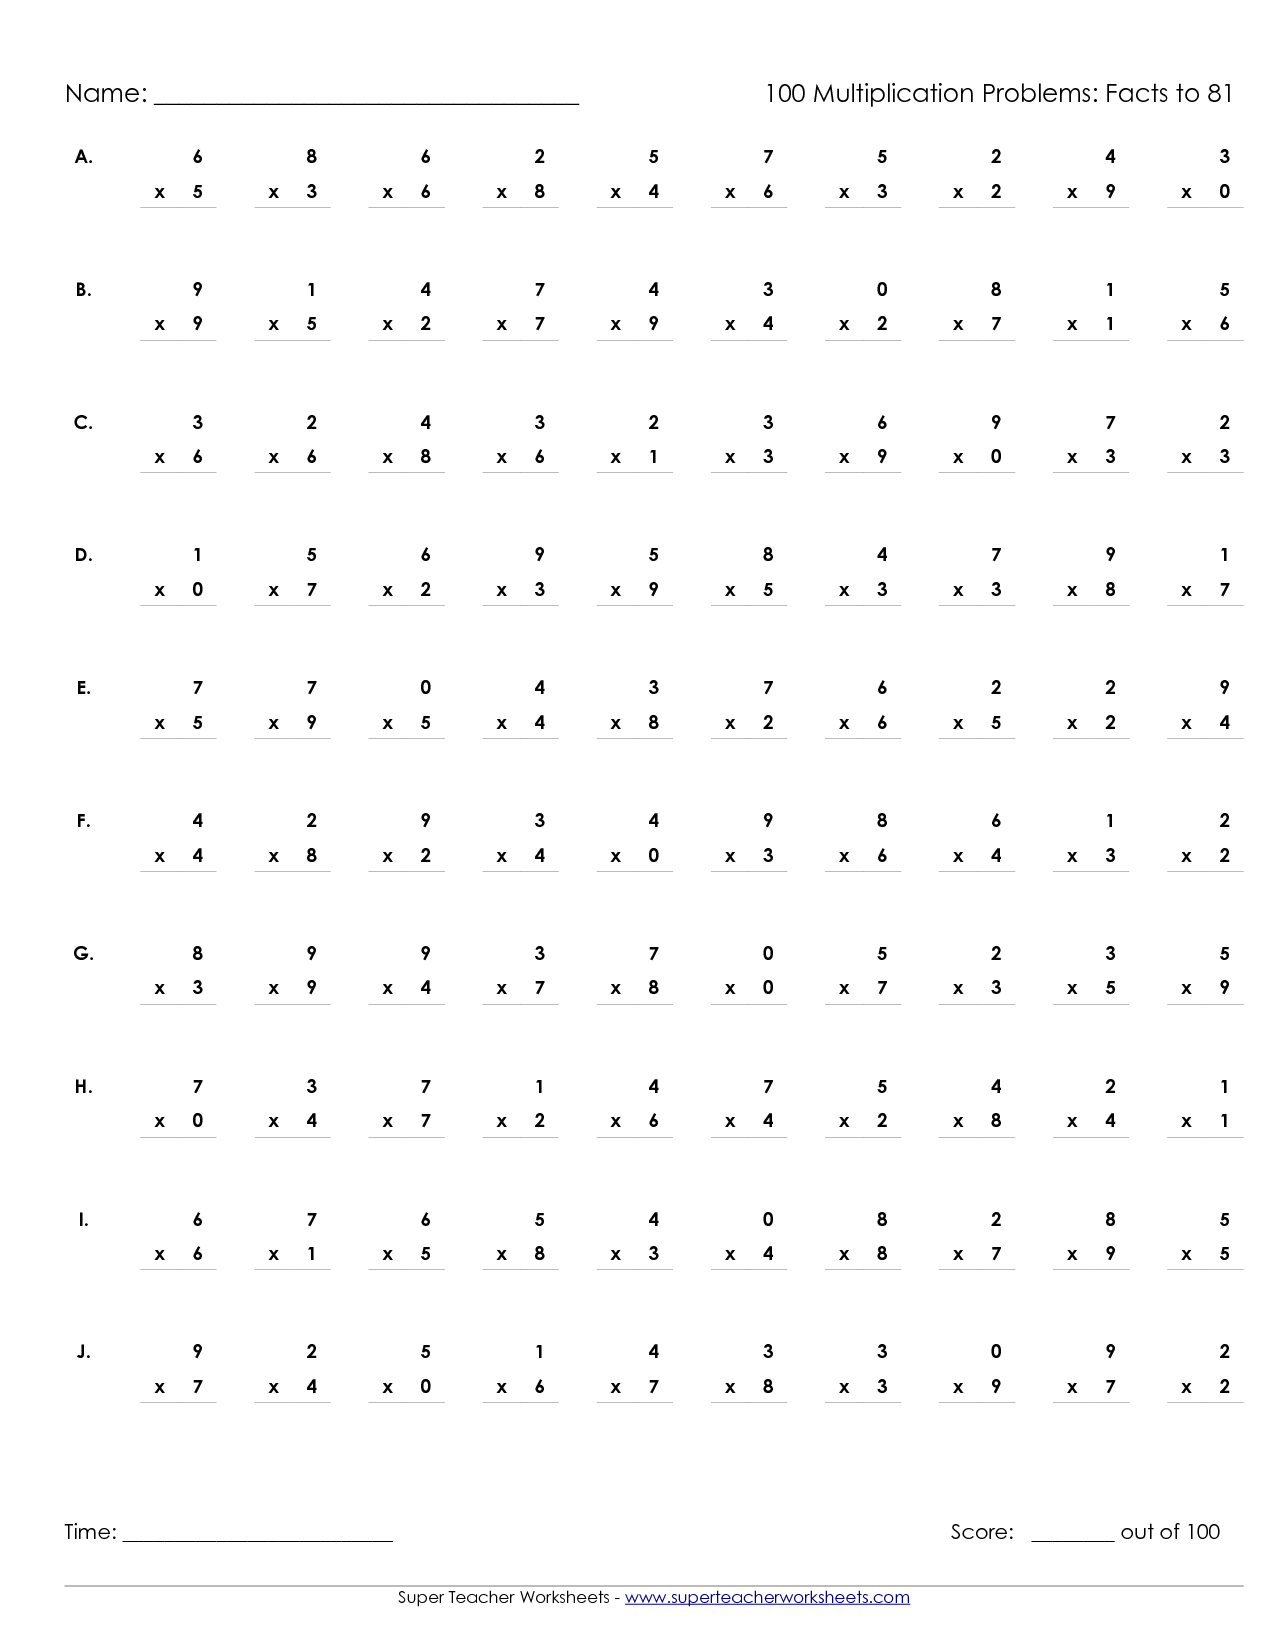 Worksheets Timed Multiplication Worksheets printable multiplication worksheets timed worksheet worksheet